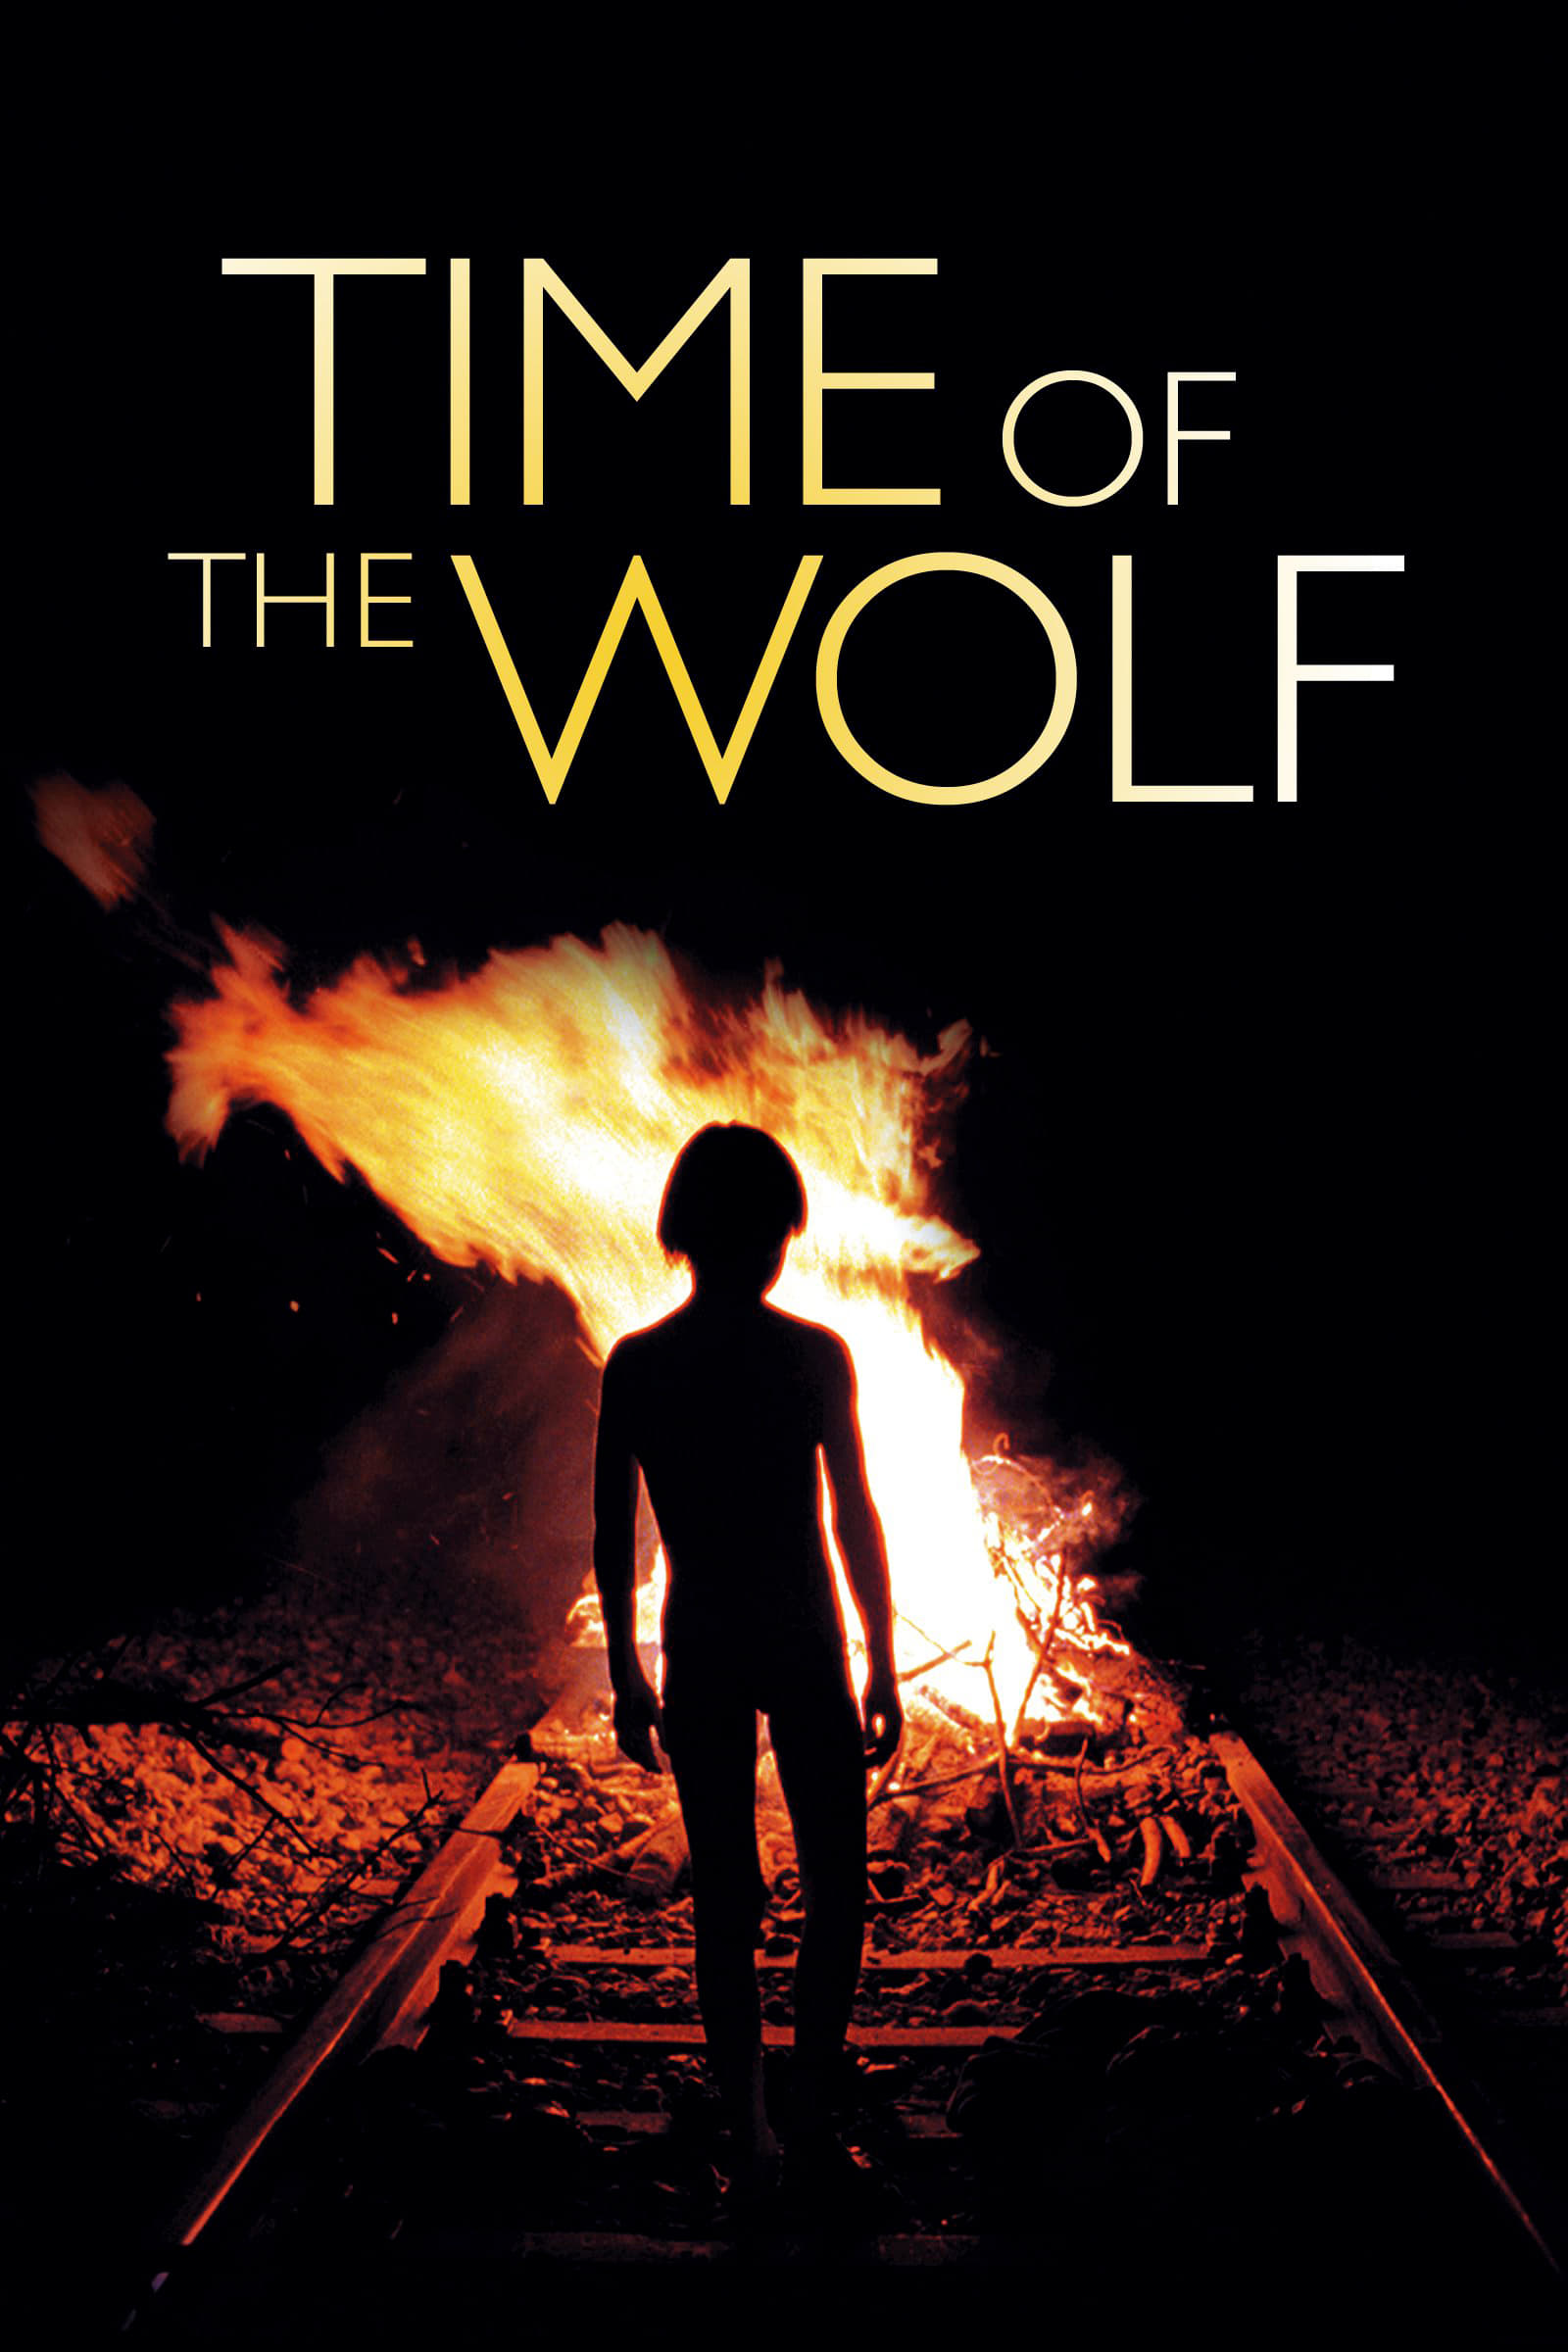 Time of the Wolf (2004)